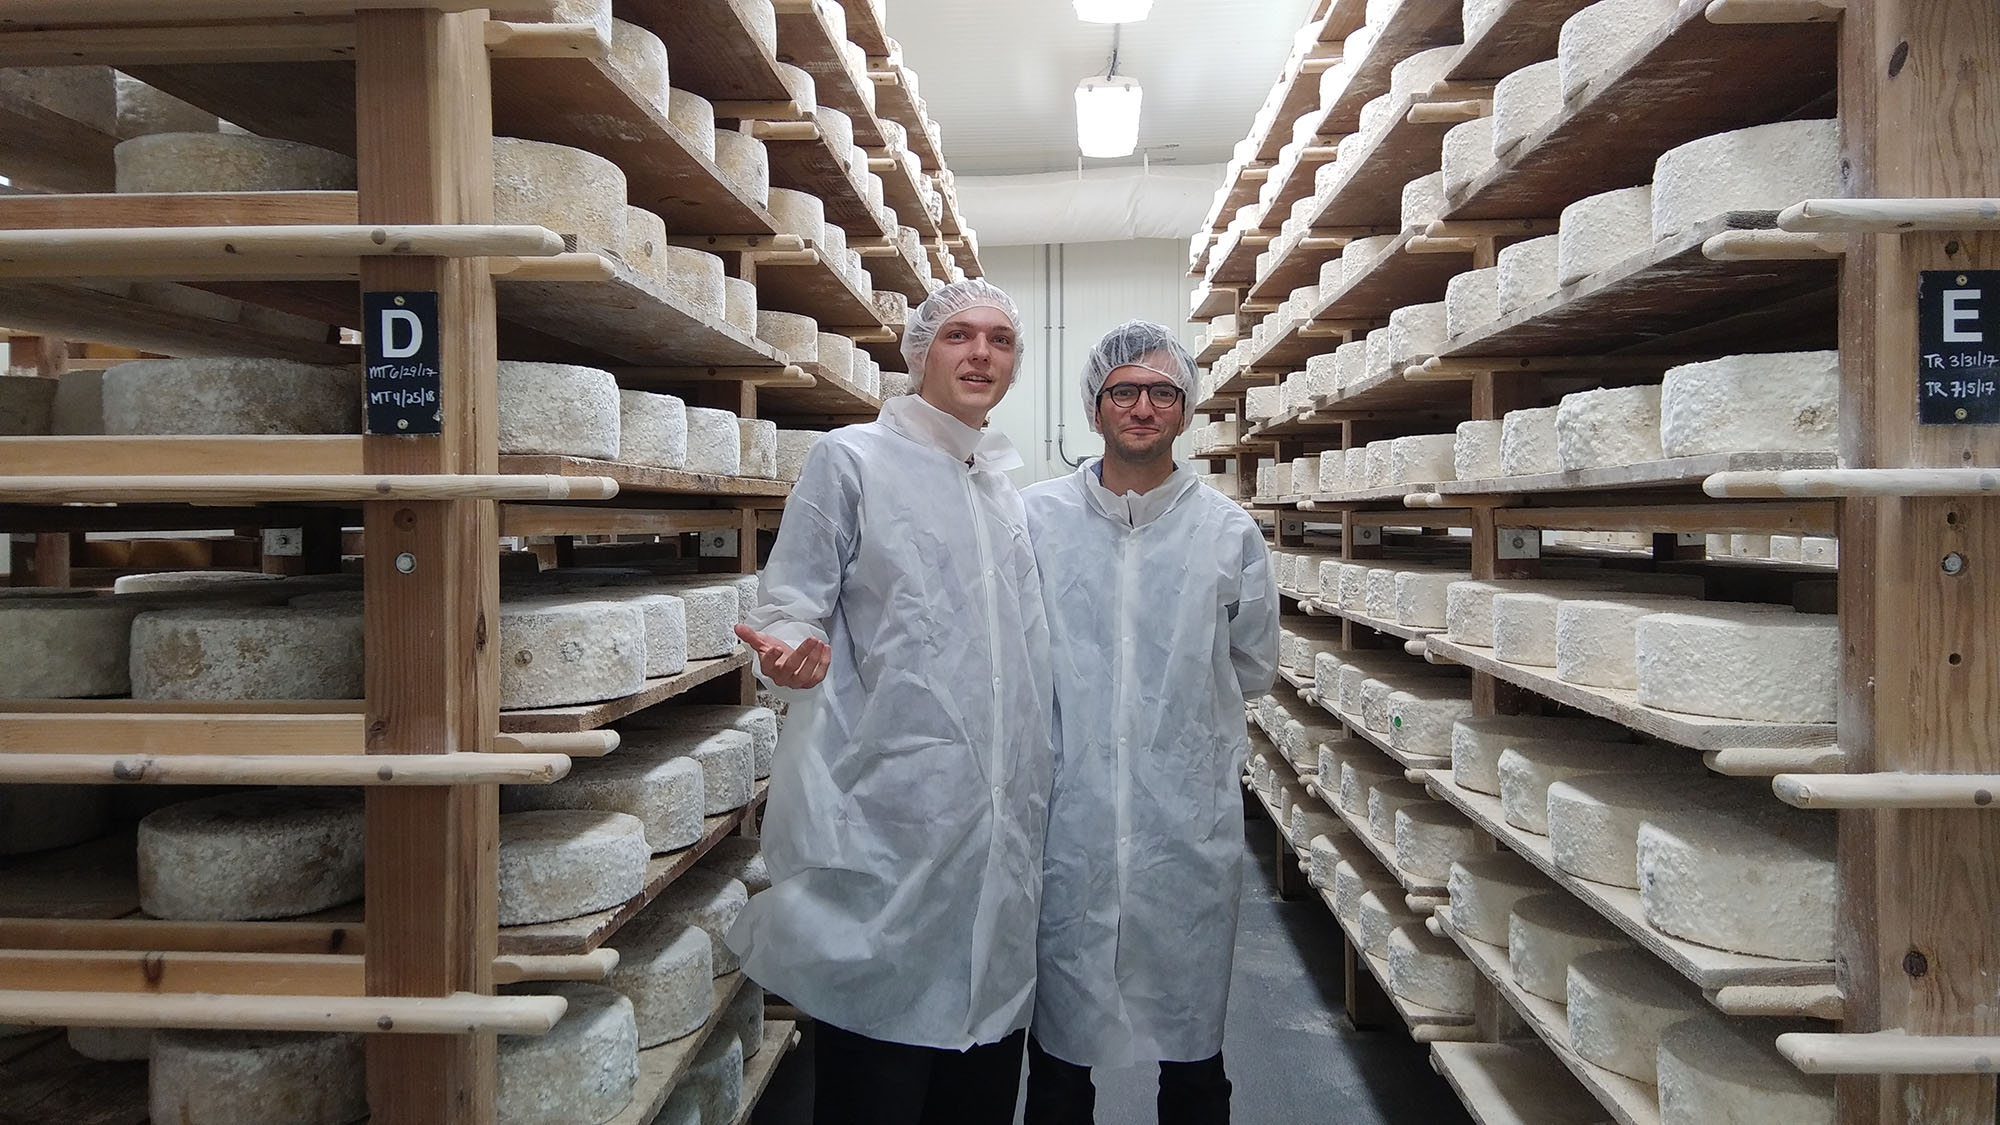 Malcolm Reynolds (left) and Alex Schaff among the wheels of aging cheeses in Arethusa Farm Dairy's cellars.